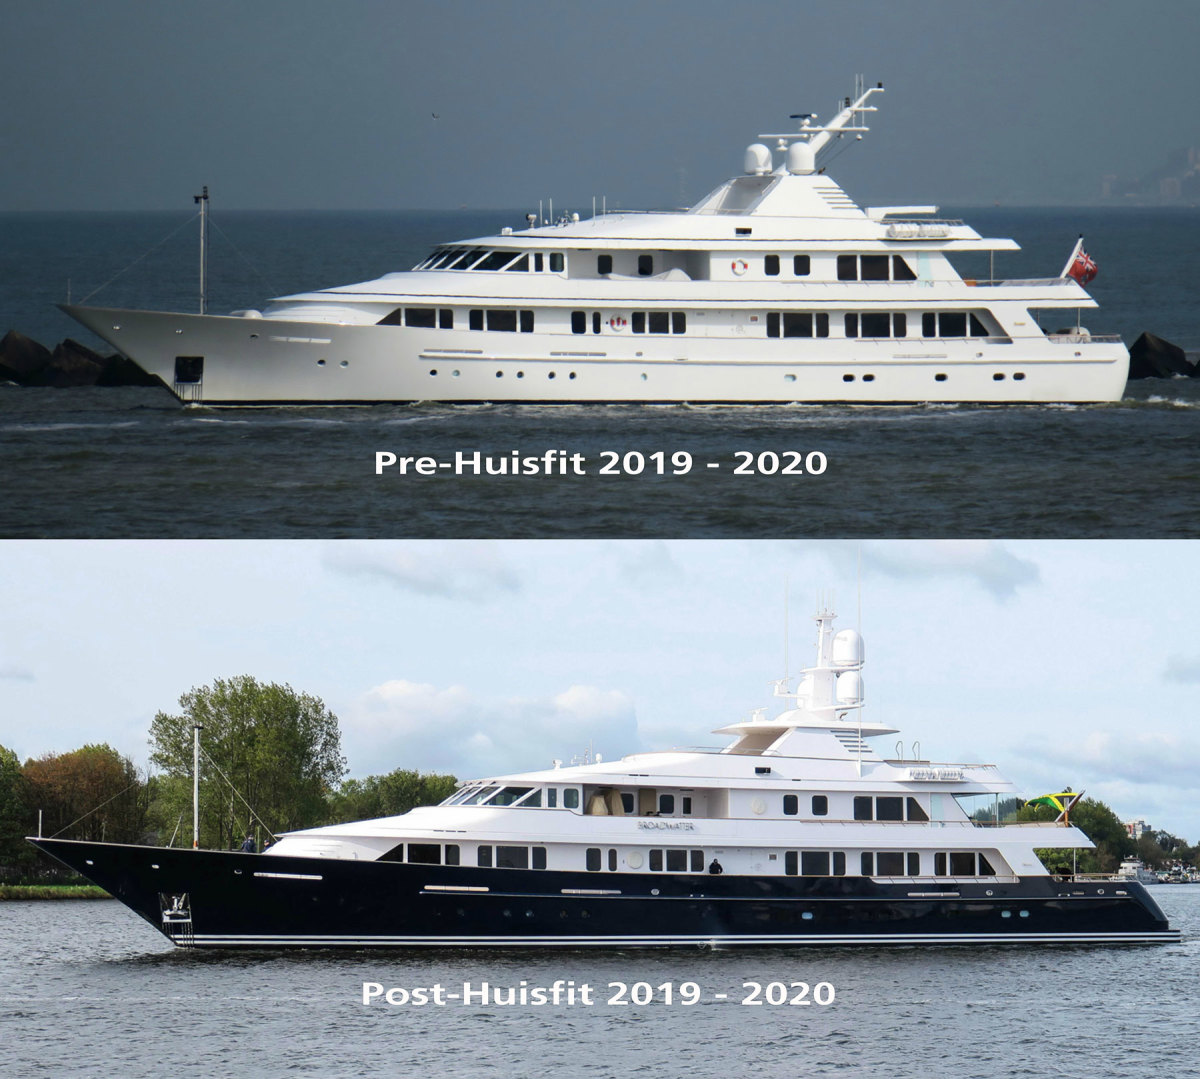 Combi-with-text-pre-and-post-Huisfit-2019---2020-by-DutchYachting